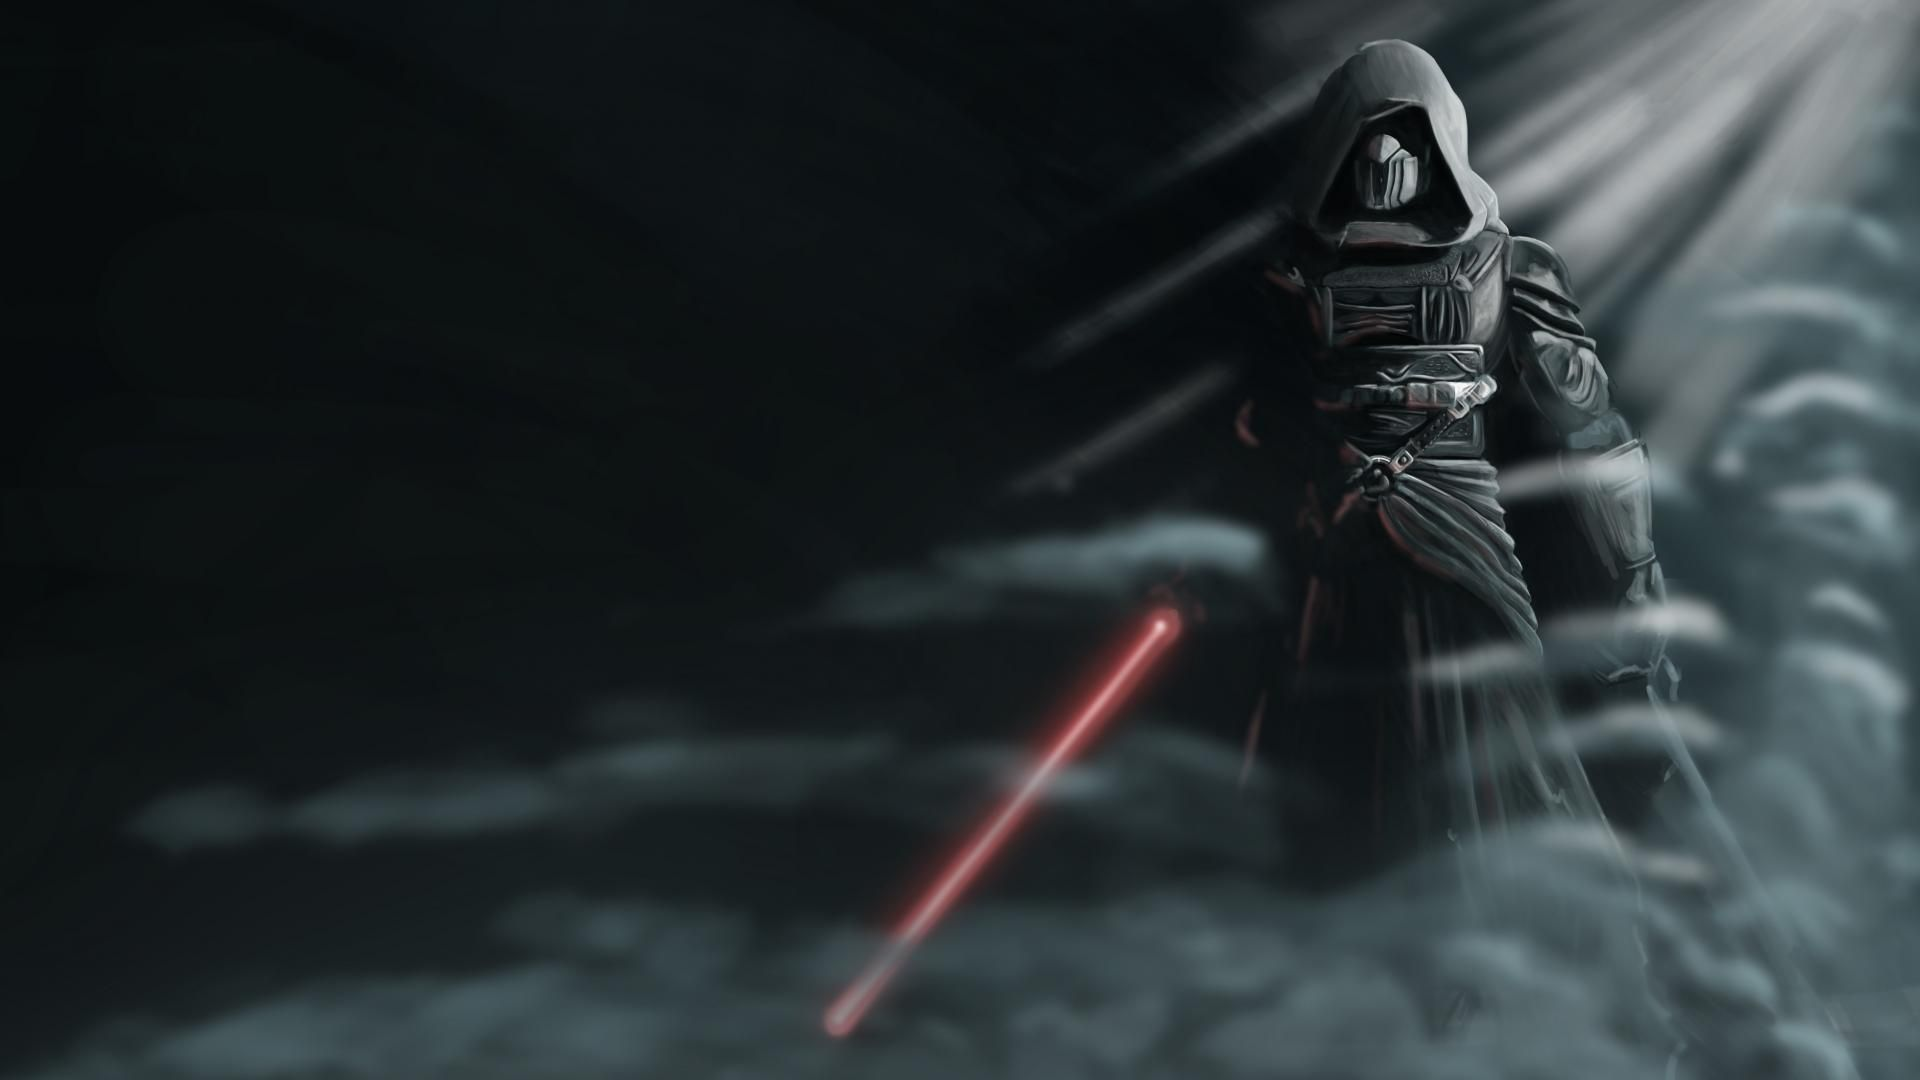 Sith Star Wars Phone Wallpapers Top Free Sith Star Wars Phone Backgrounds Wallpaperaccess